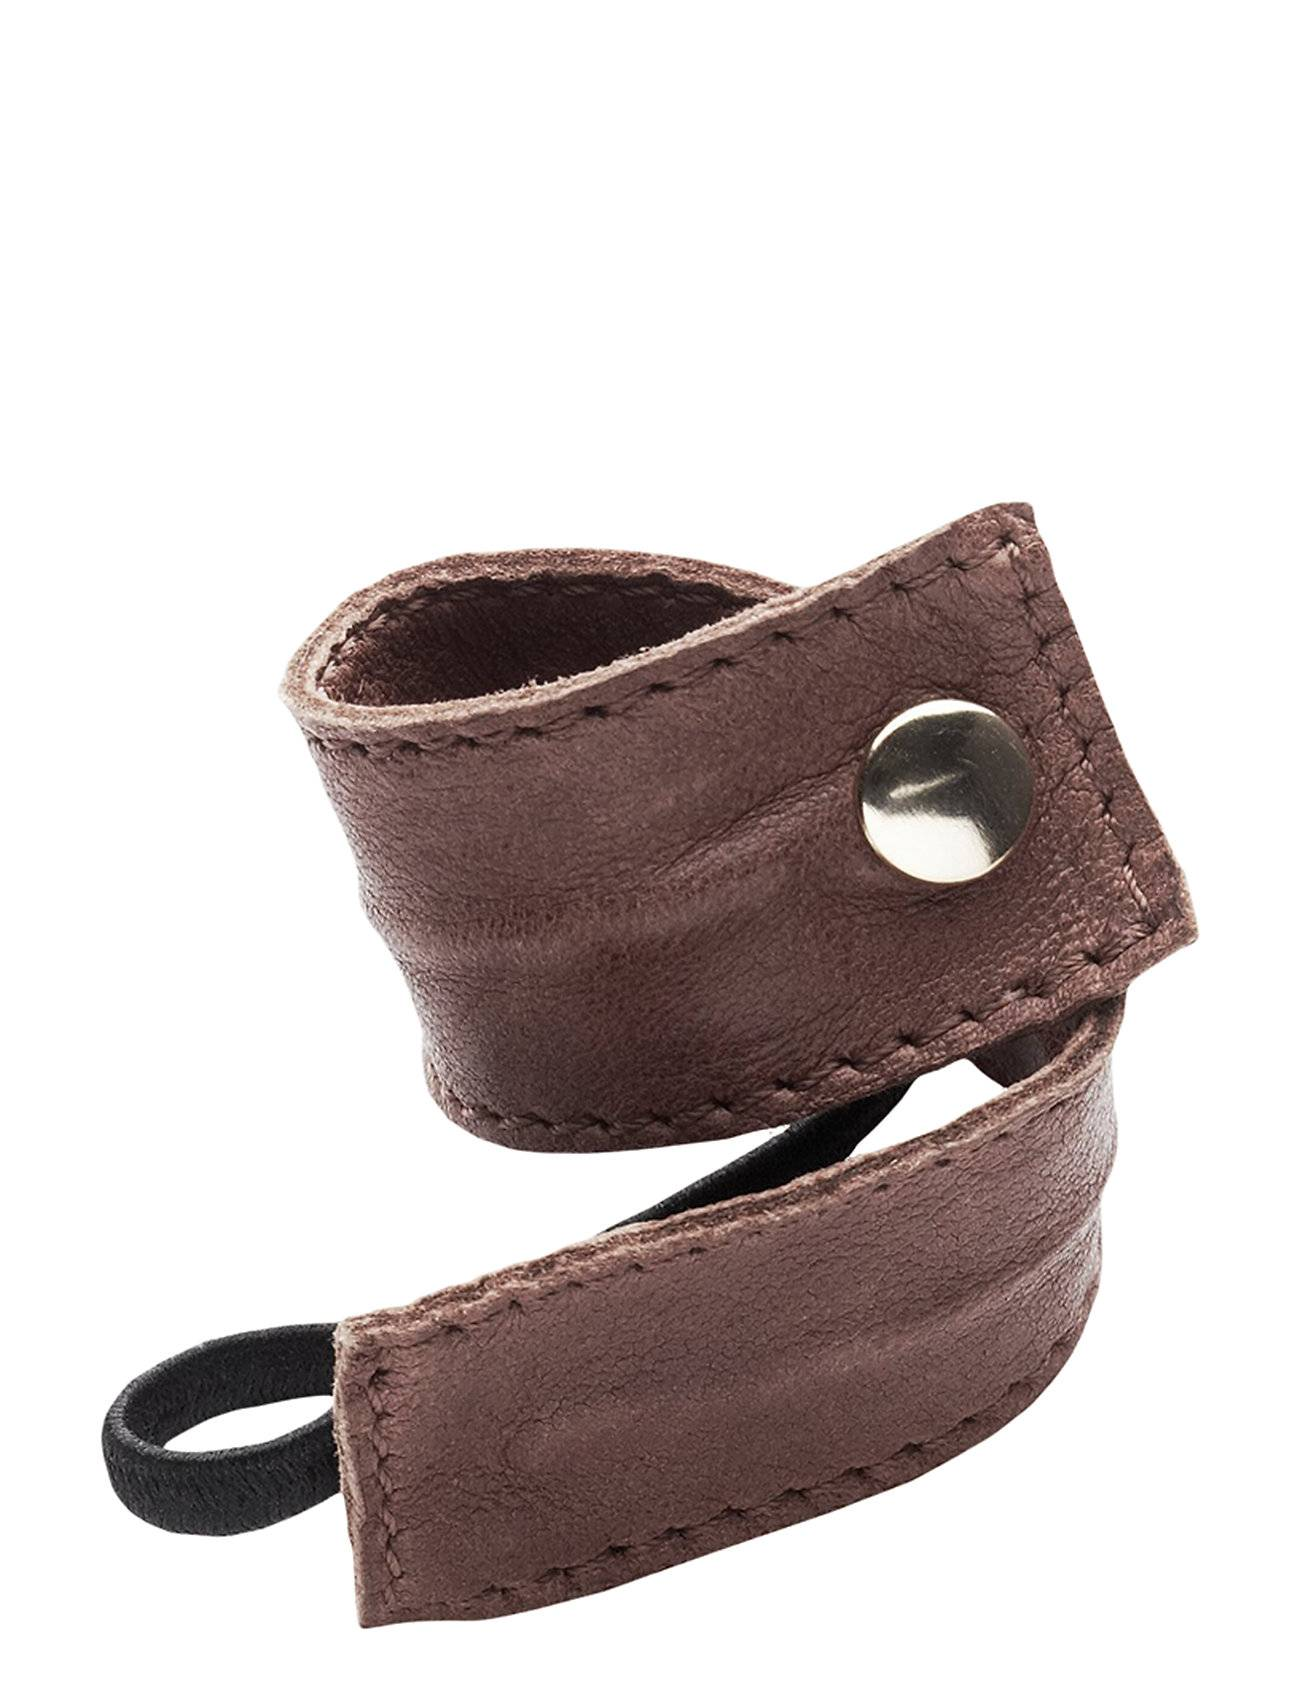 Image of Corinne Leather Band Short Bendable Beauty WOMEN Hair Accessories Hair Accessories Ruskea Corinne